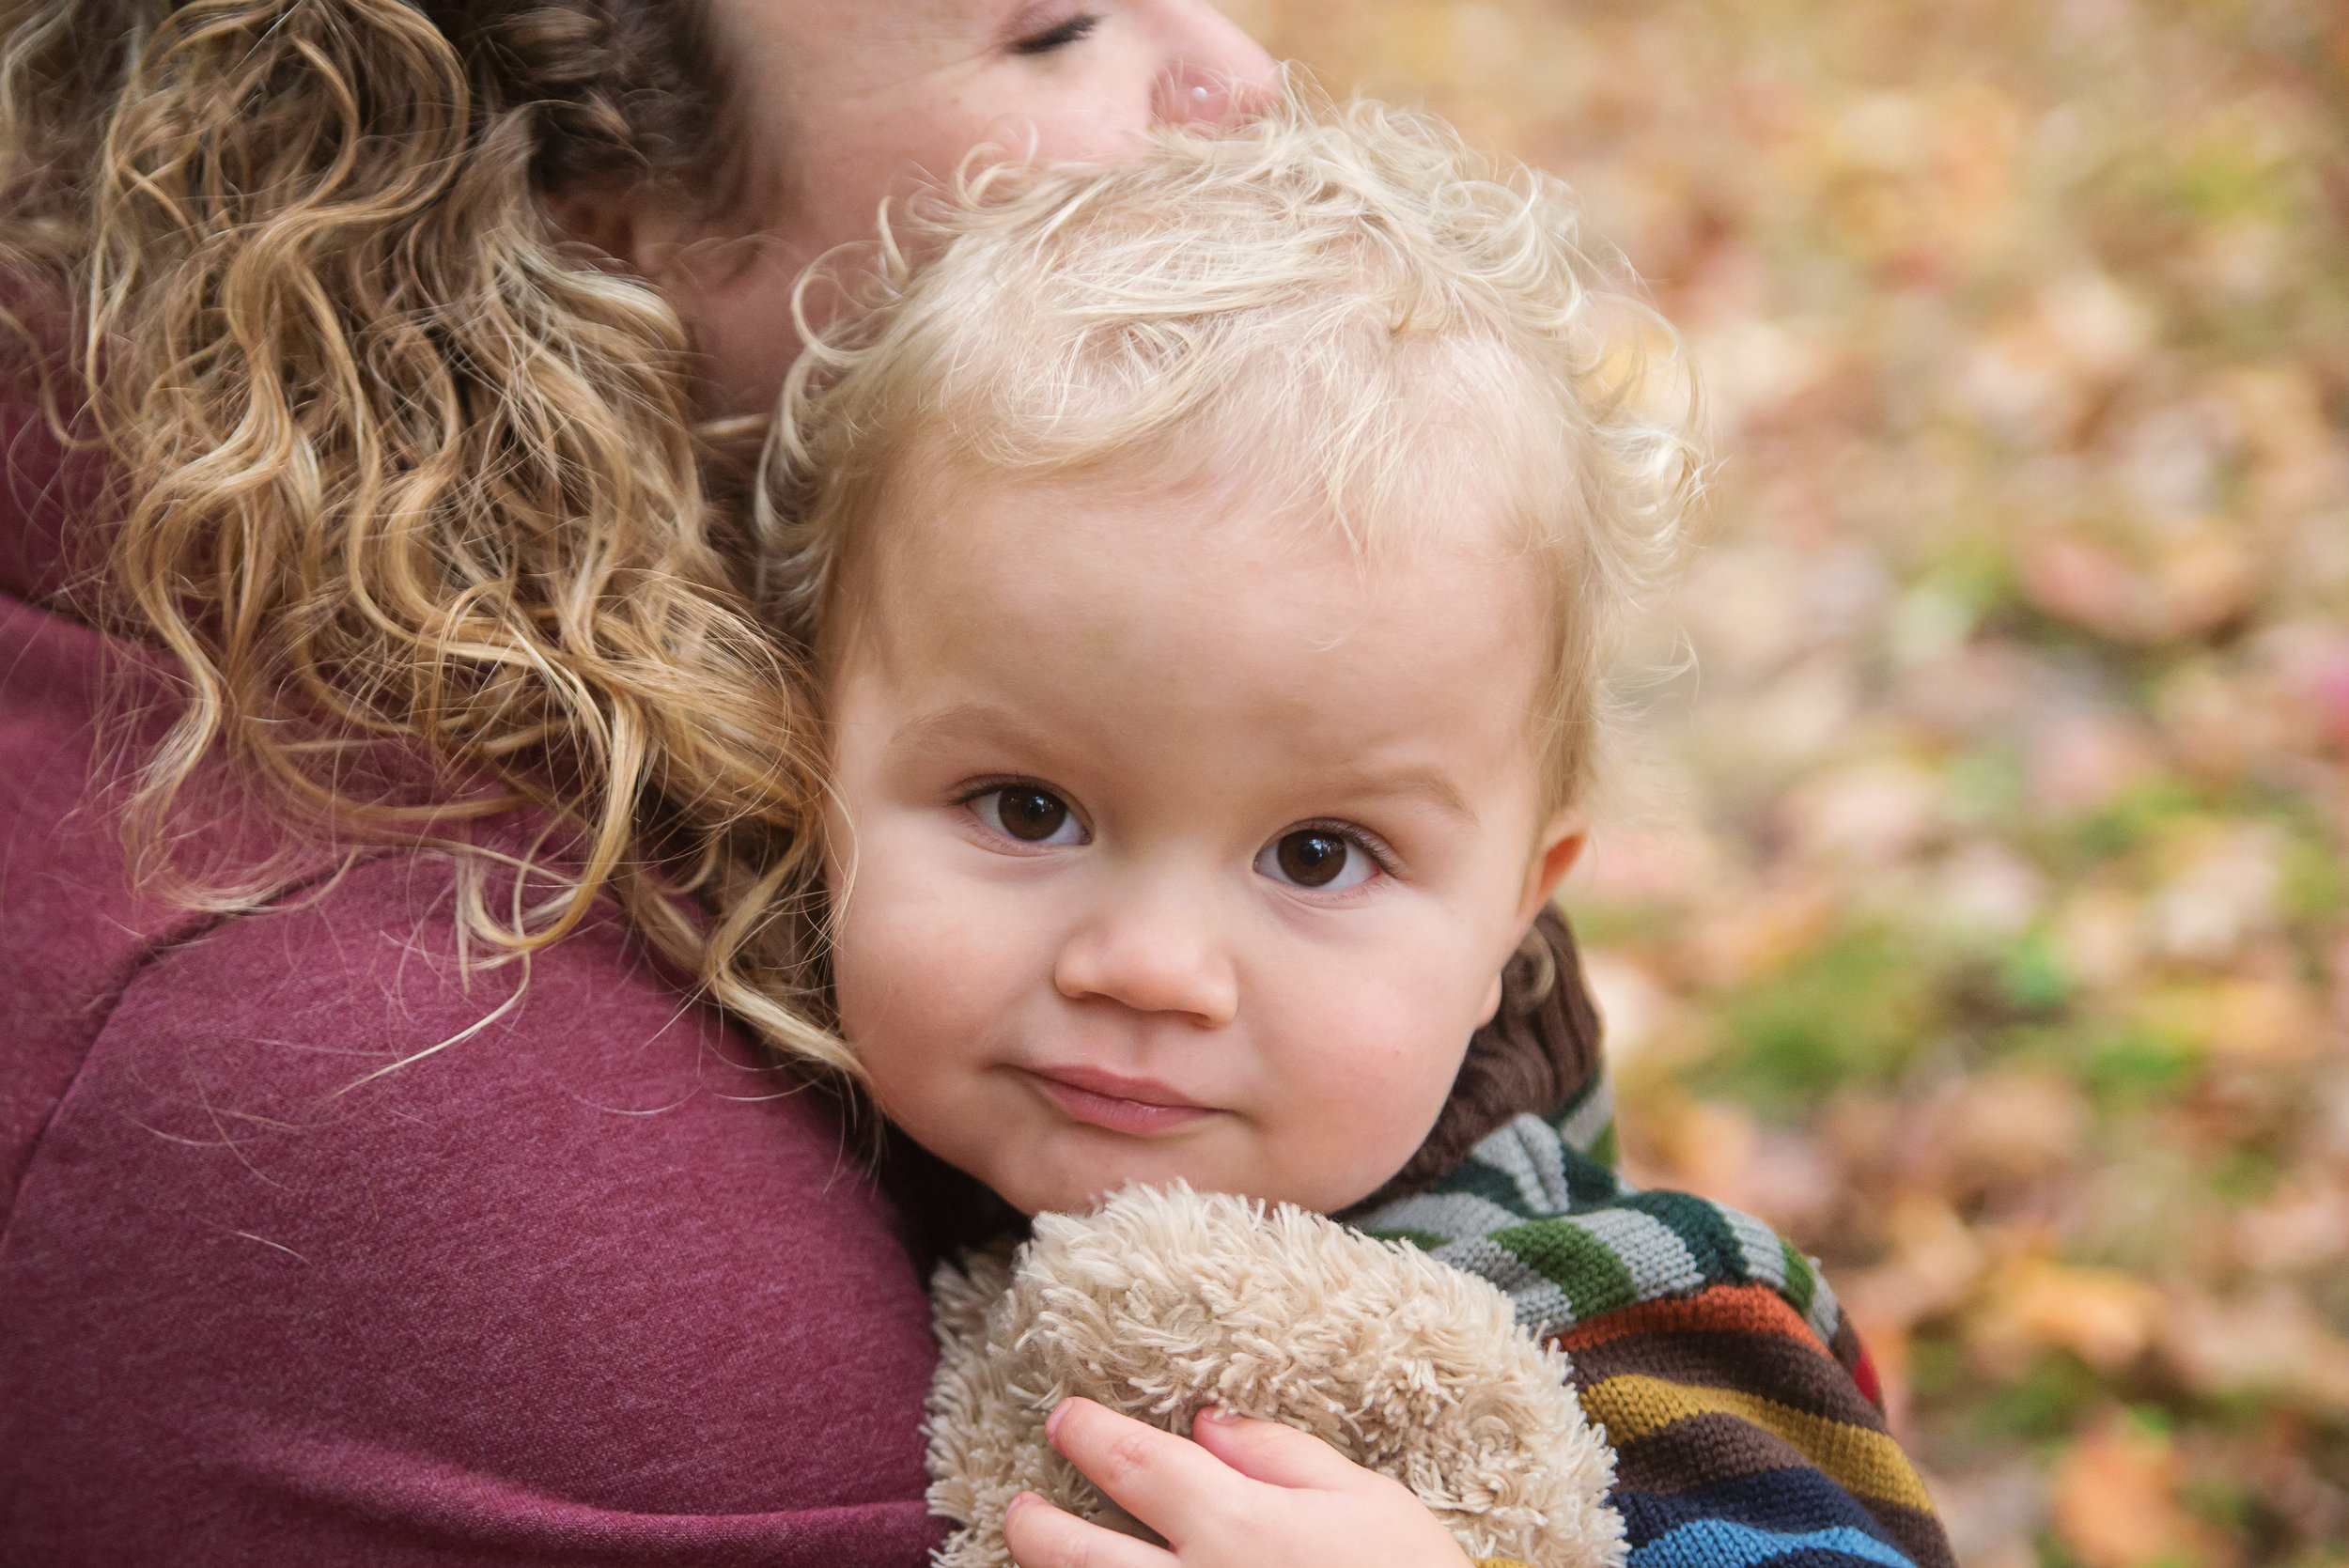 st-louis-fall-mini-sessions-2018-family-photographer-boy-on-moms-shoulder-leaves-in-the-background.jpg